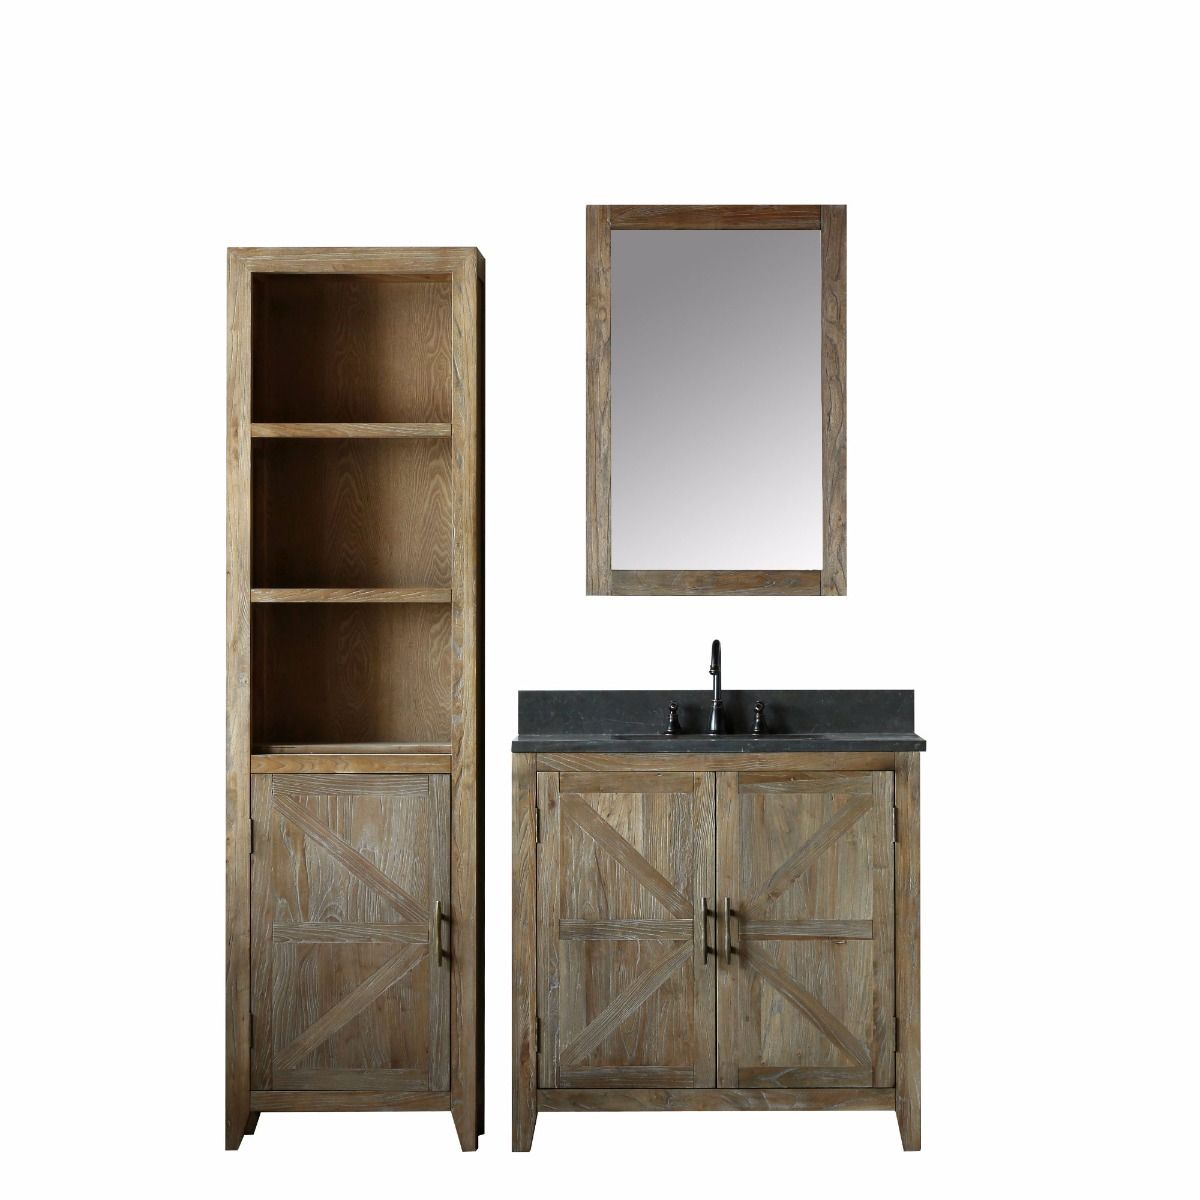 The Willownest Petite antique bathroom vanity has rustic style to spare with rich wood tones and a linen tower straight out of a farmhouse